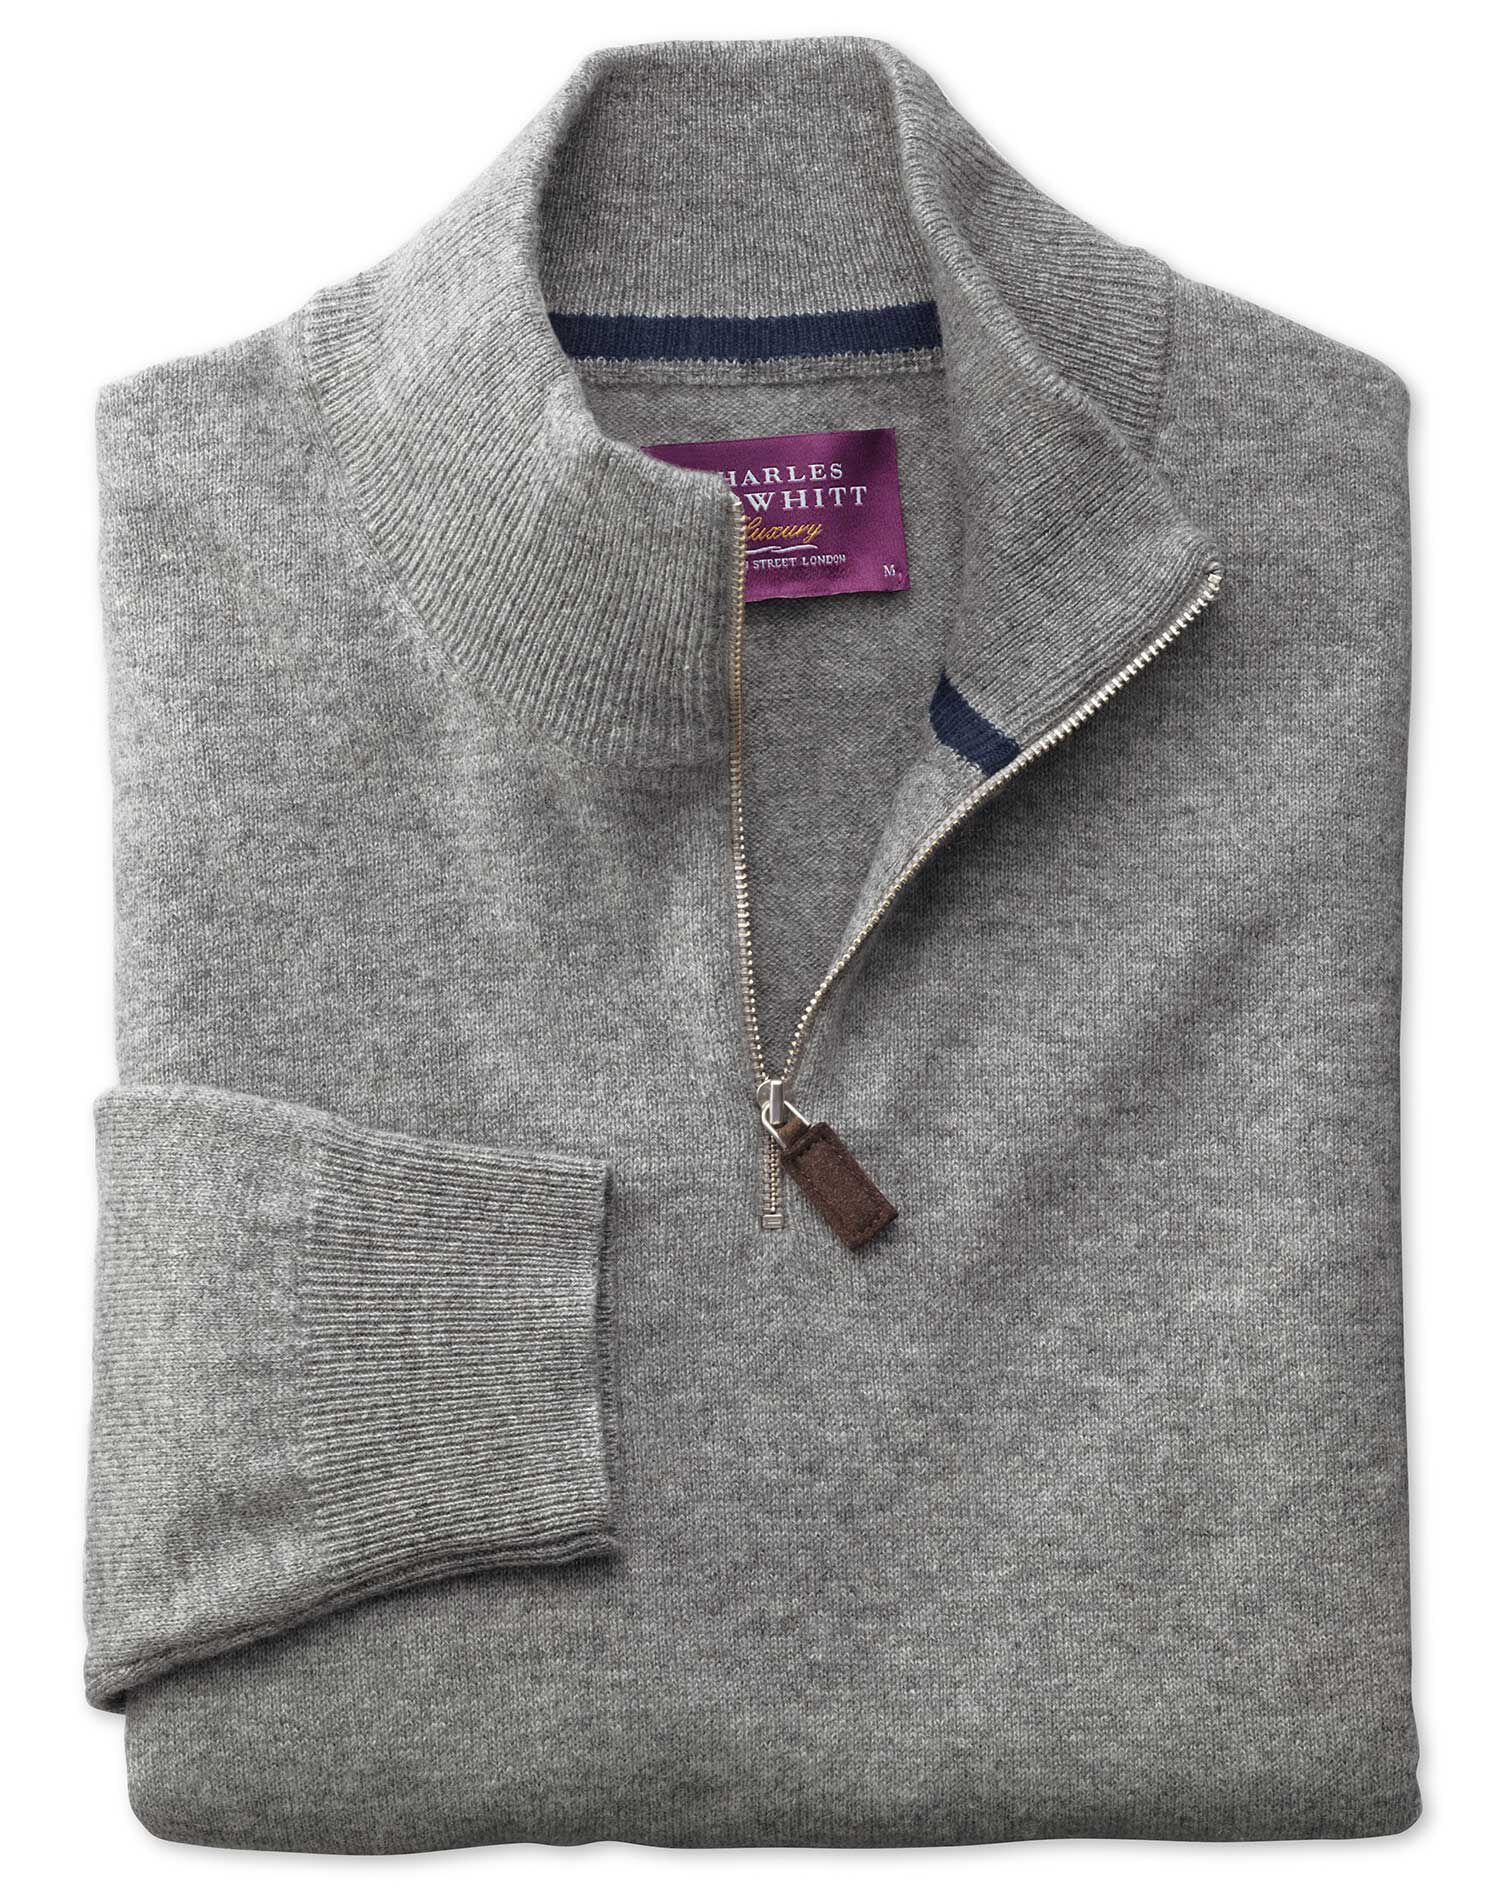 Silver Cashmere Zip Neck Jumper Size Large by Charles Tyrwhitt